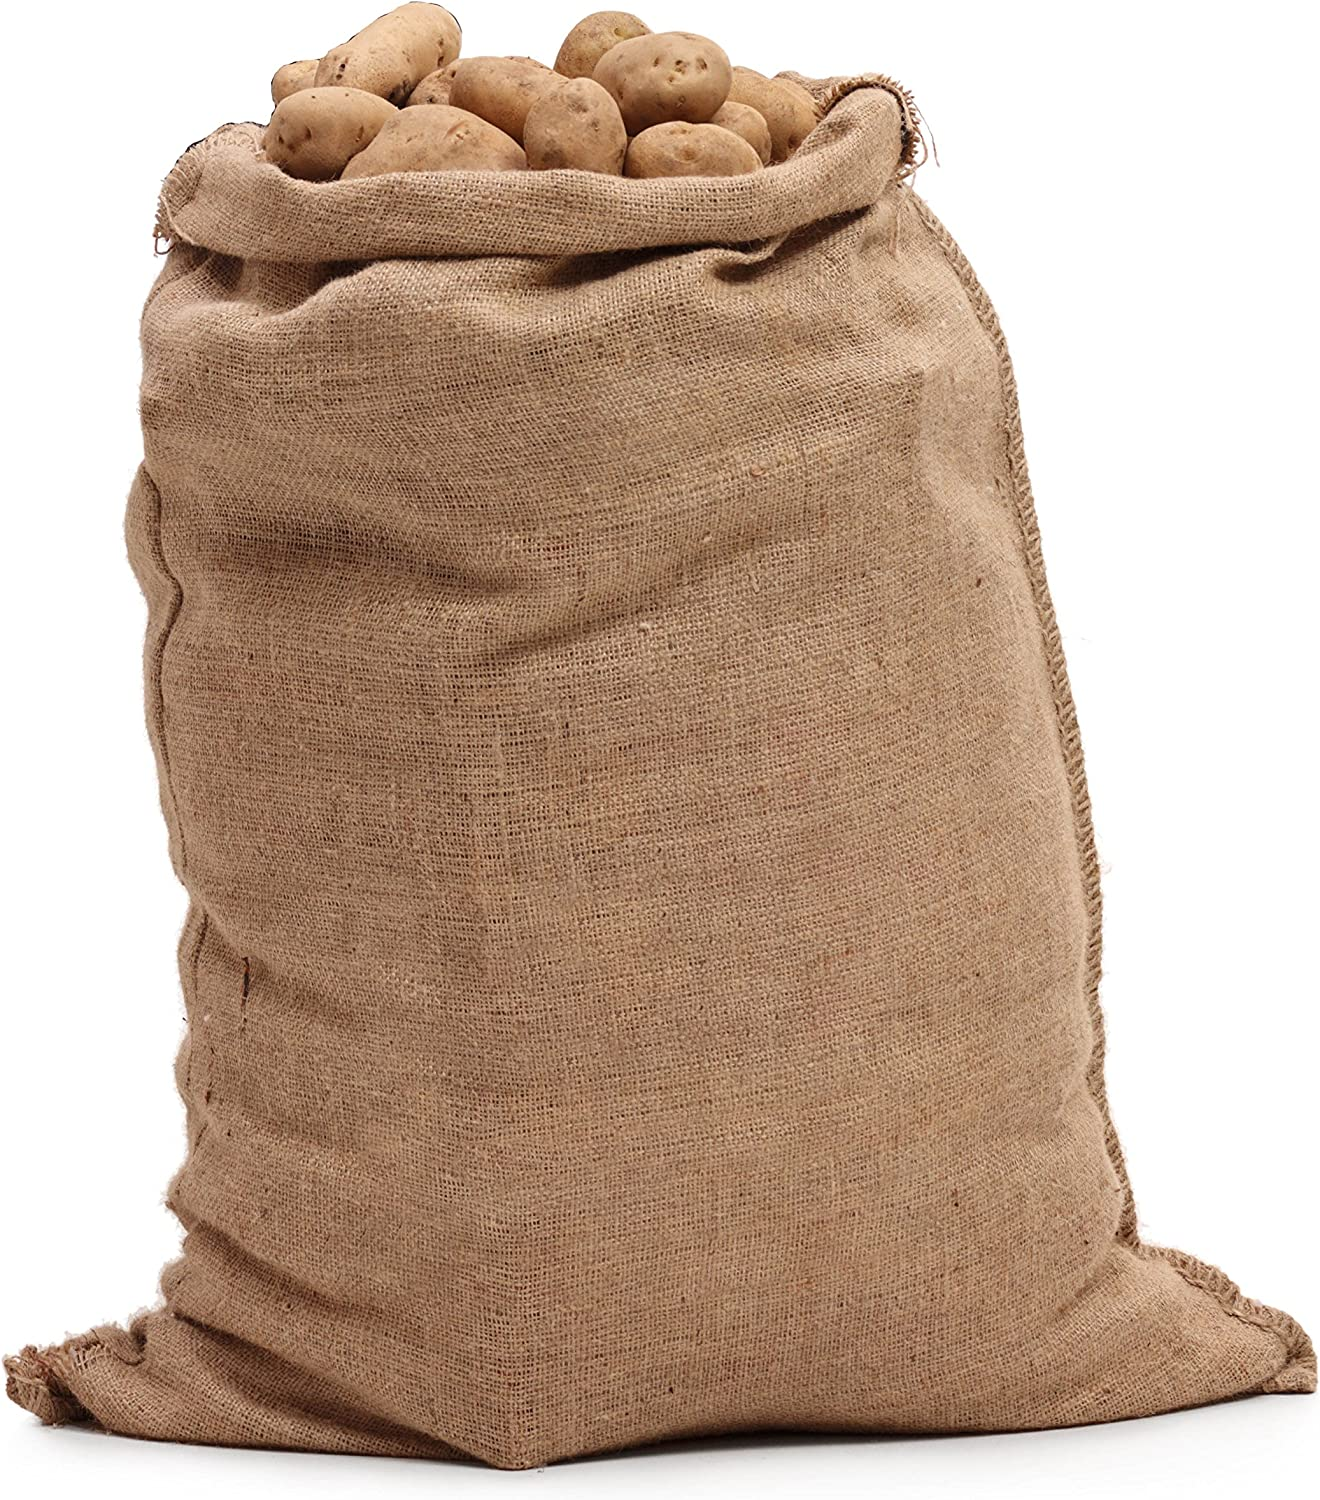 "Large Burlap Bags 18"" x 30"" - Burlap Bags for Planting/Gardening by Sandbaggy (Pack of 10)"